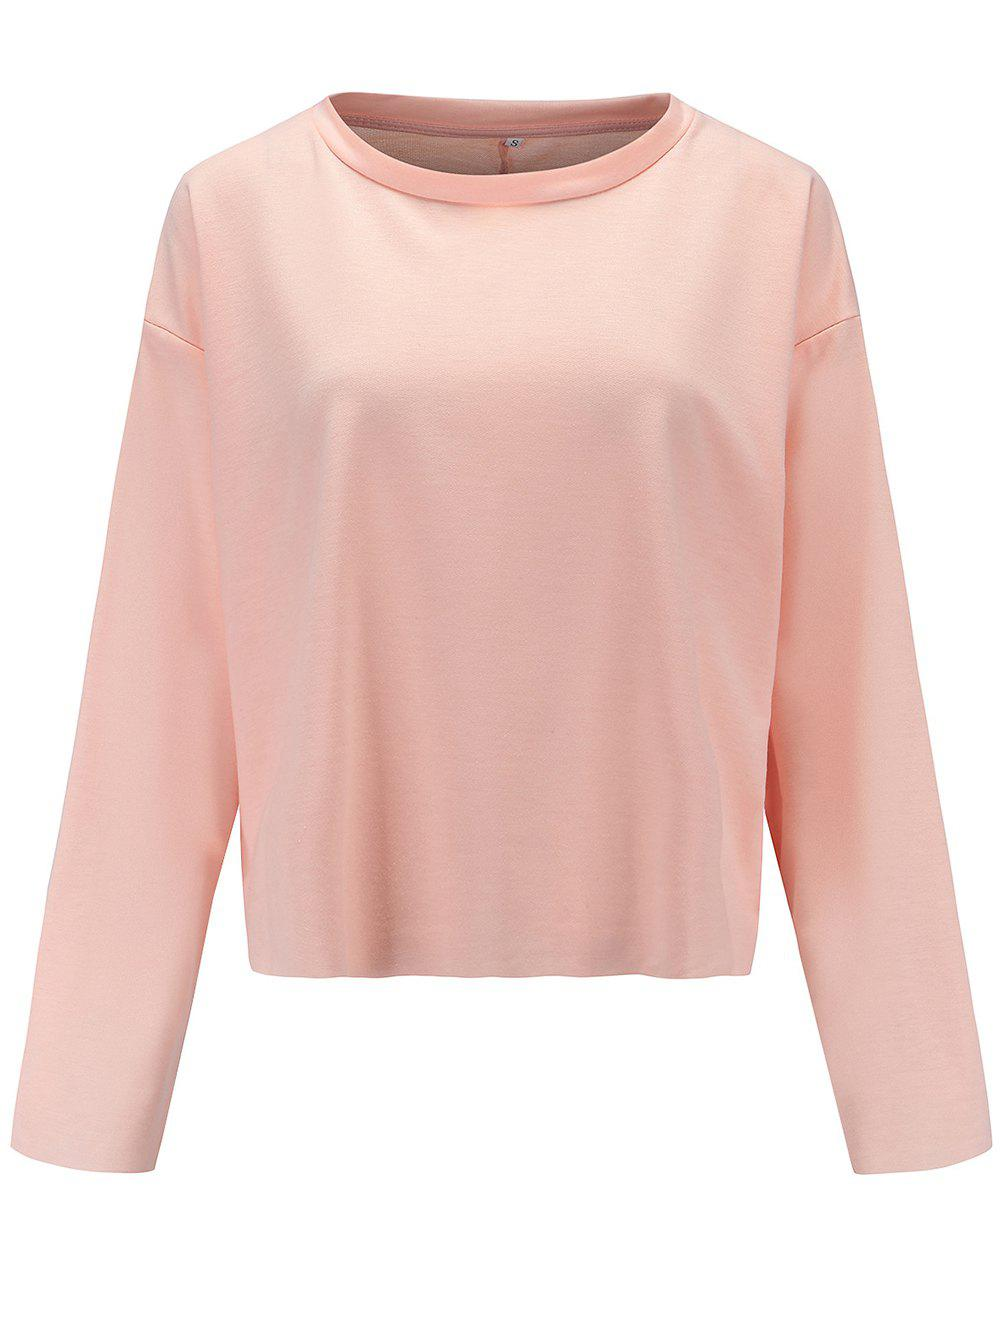 Latest Womens Casual Round Neck  Sweatshirt  Long Sleeve Pullover Tops